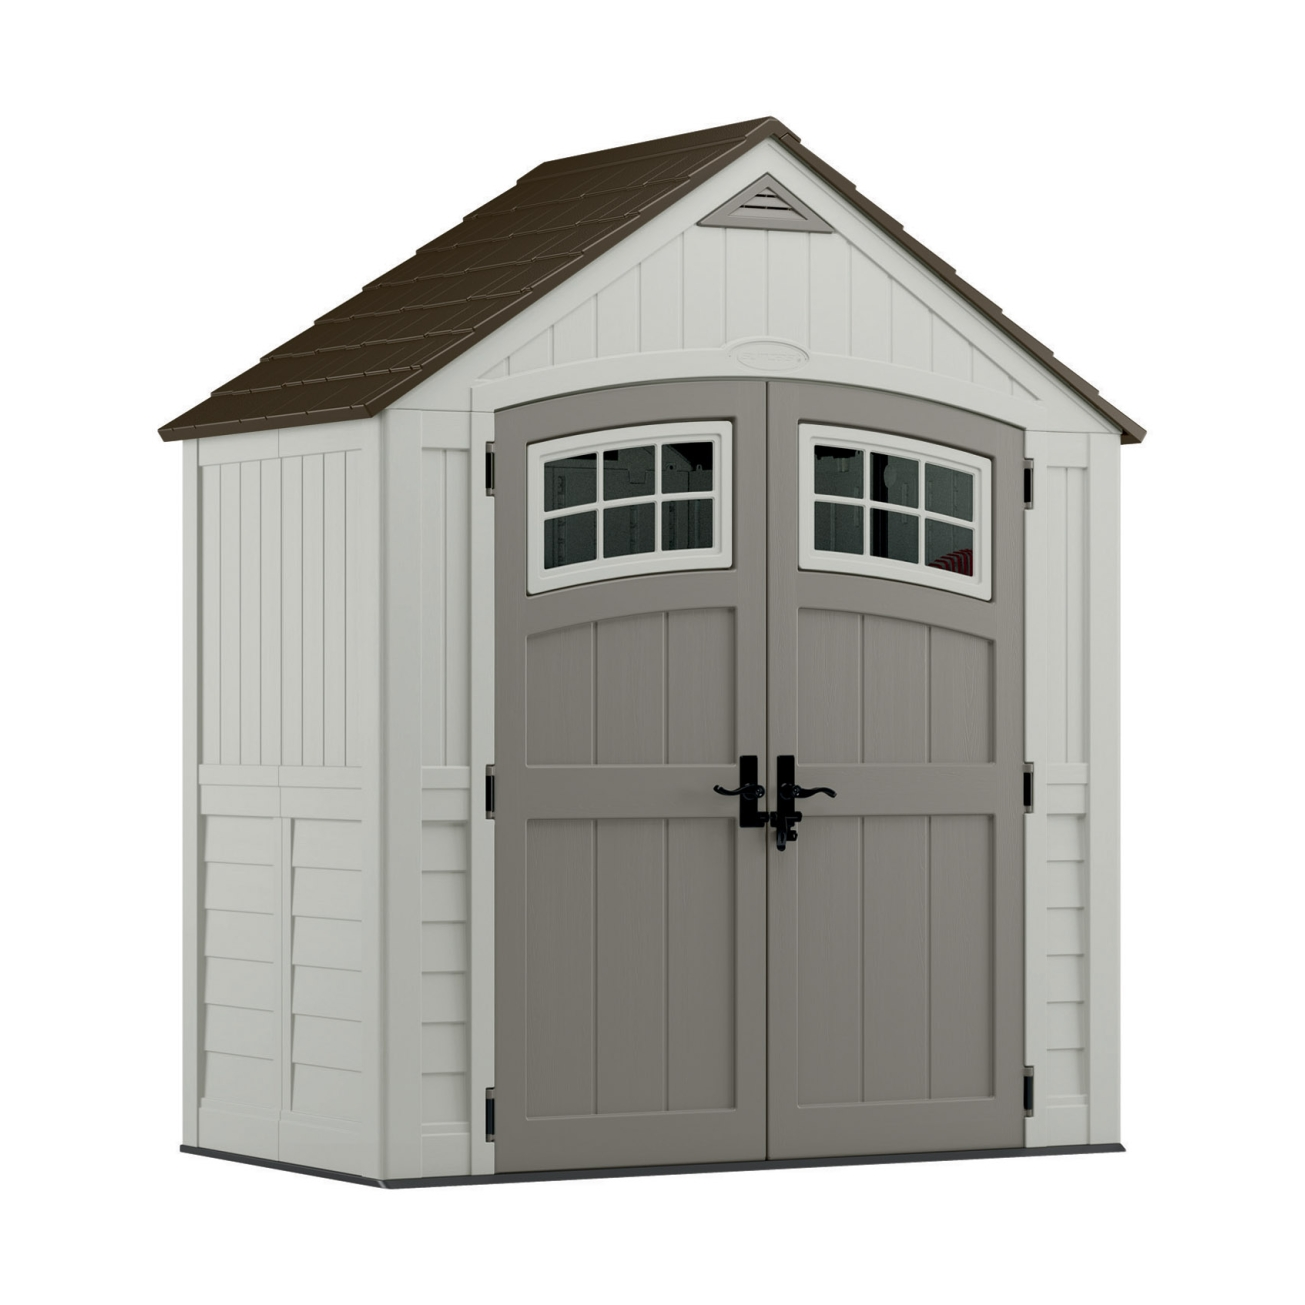 storage sheds suncast 7ft x 4ft cascade resin storage shed (bms7400) - ace hardware TYASELX